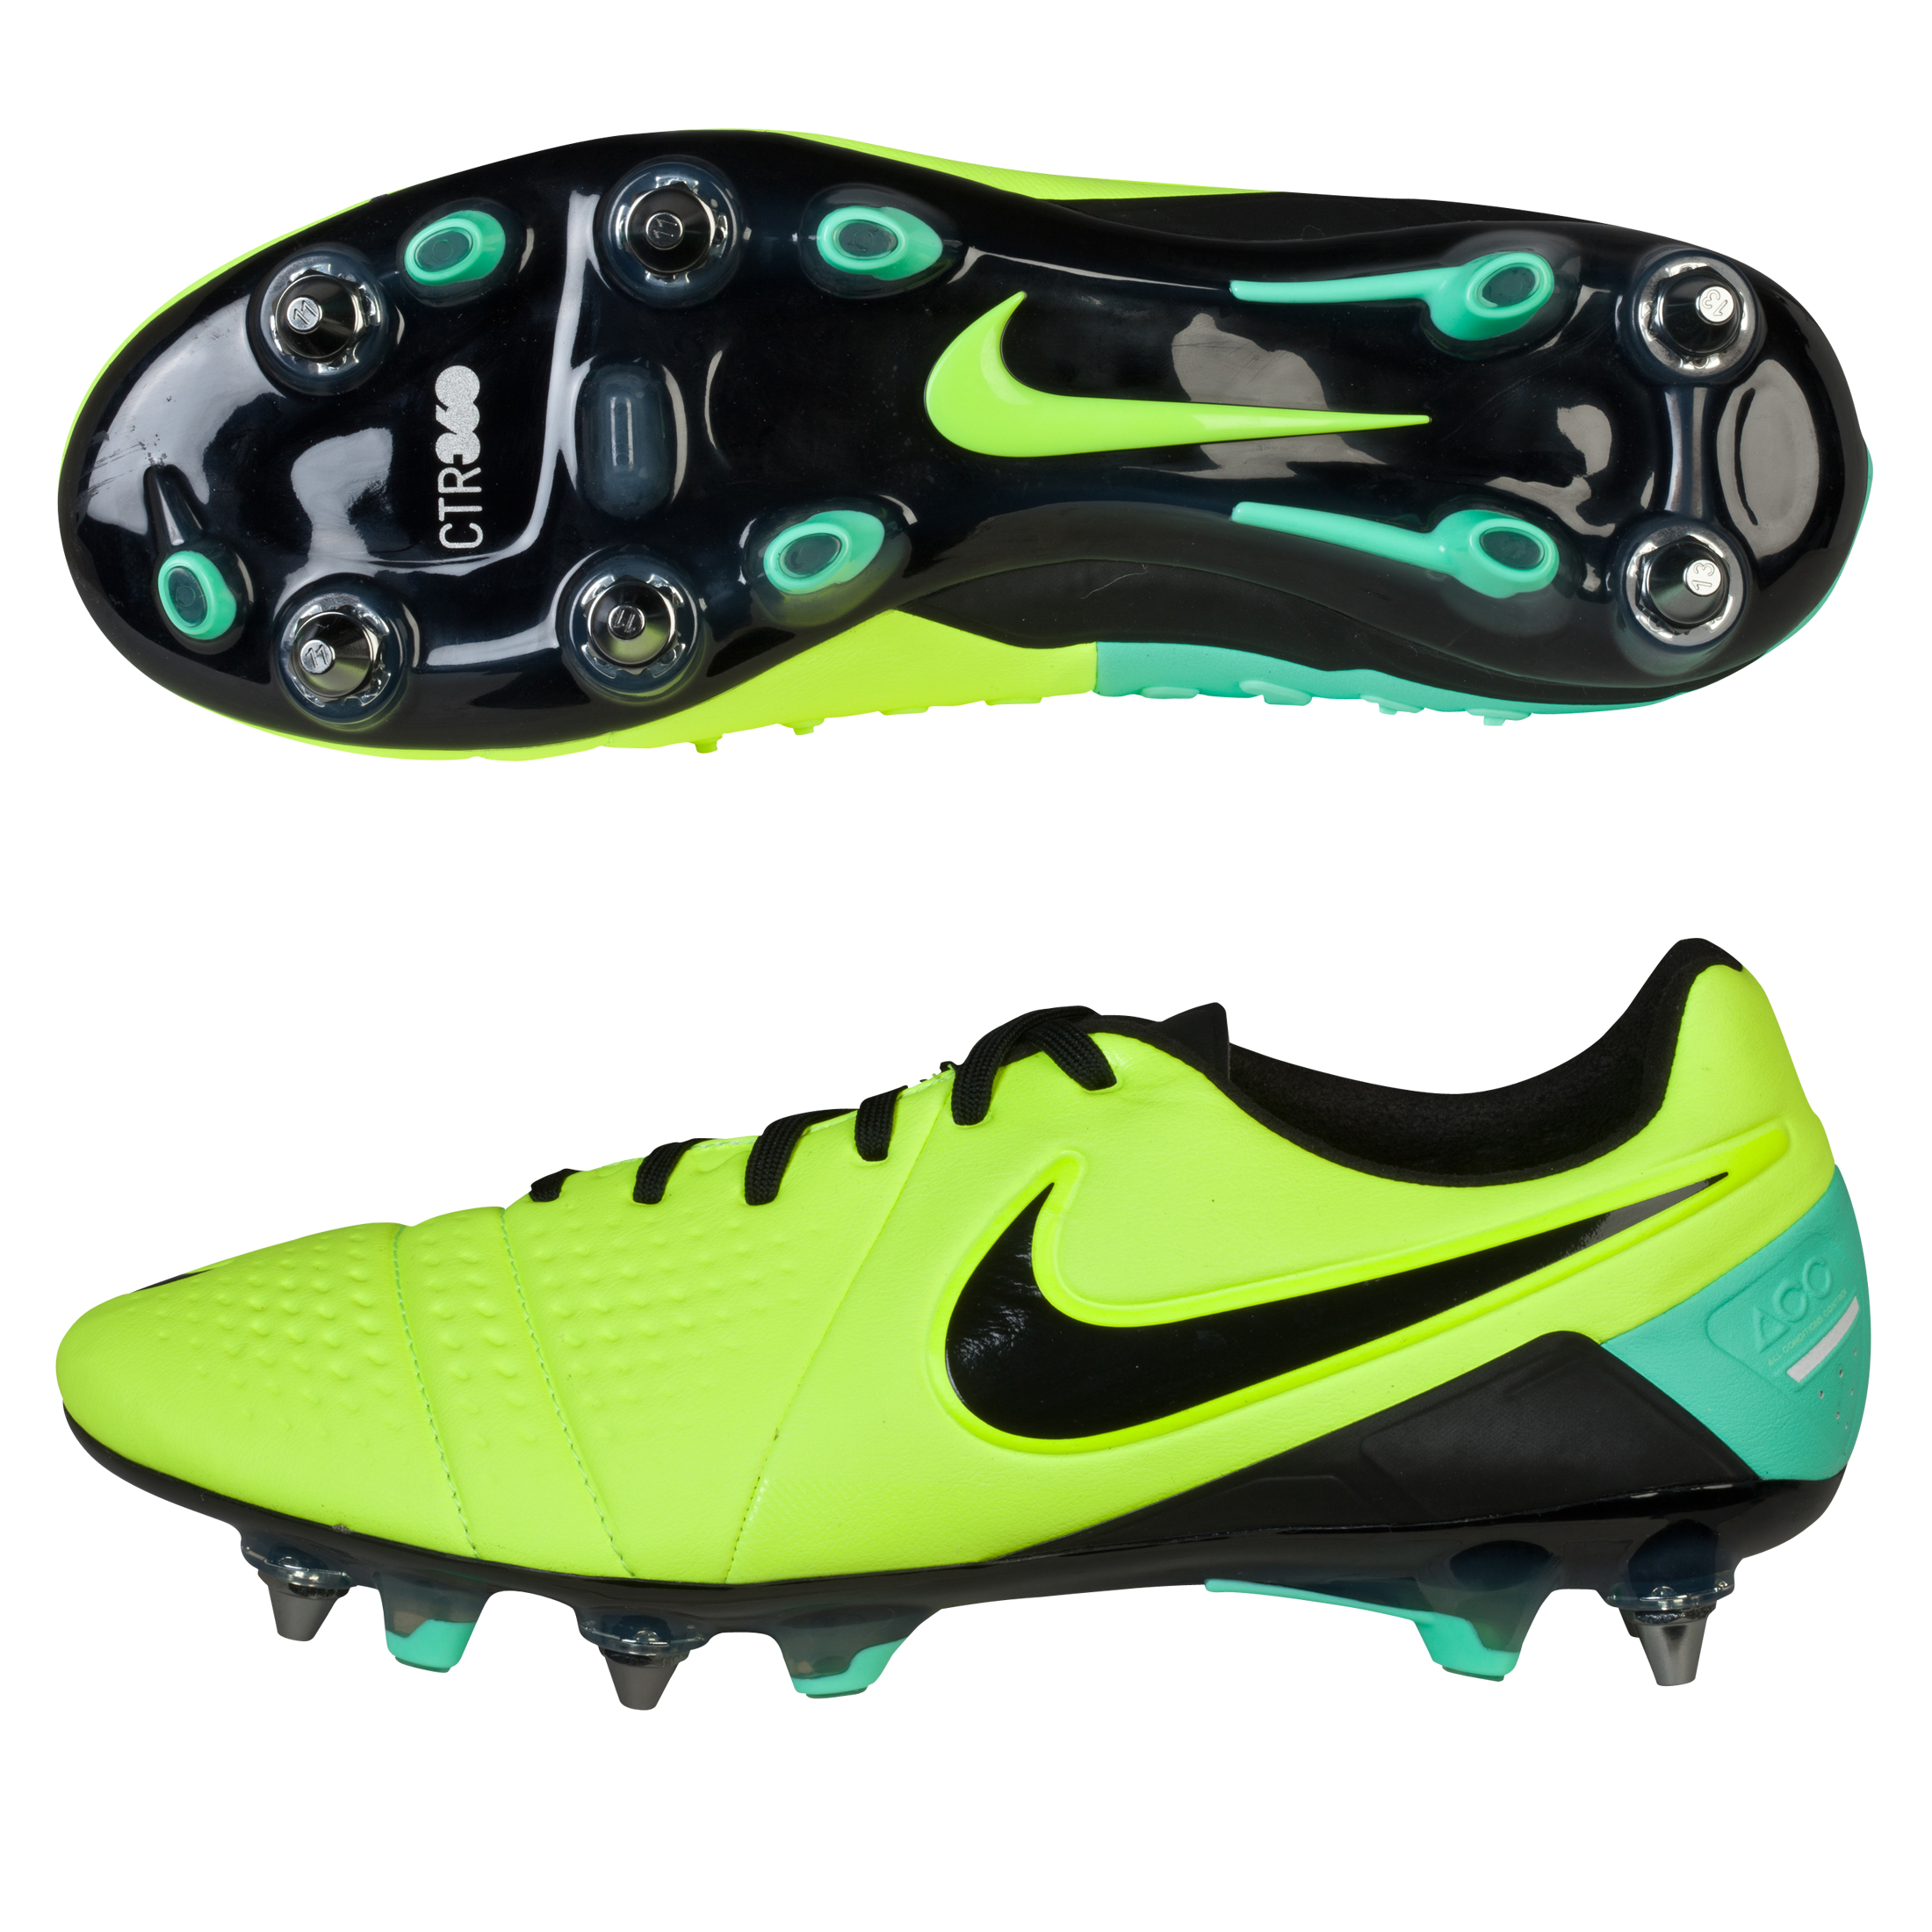 Nike CTR360 Maestri III Soft Ground-Pro Football Boots Yellow